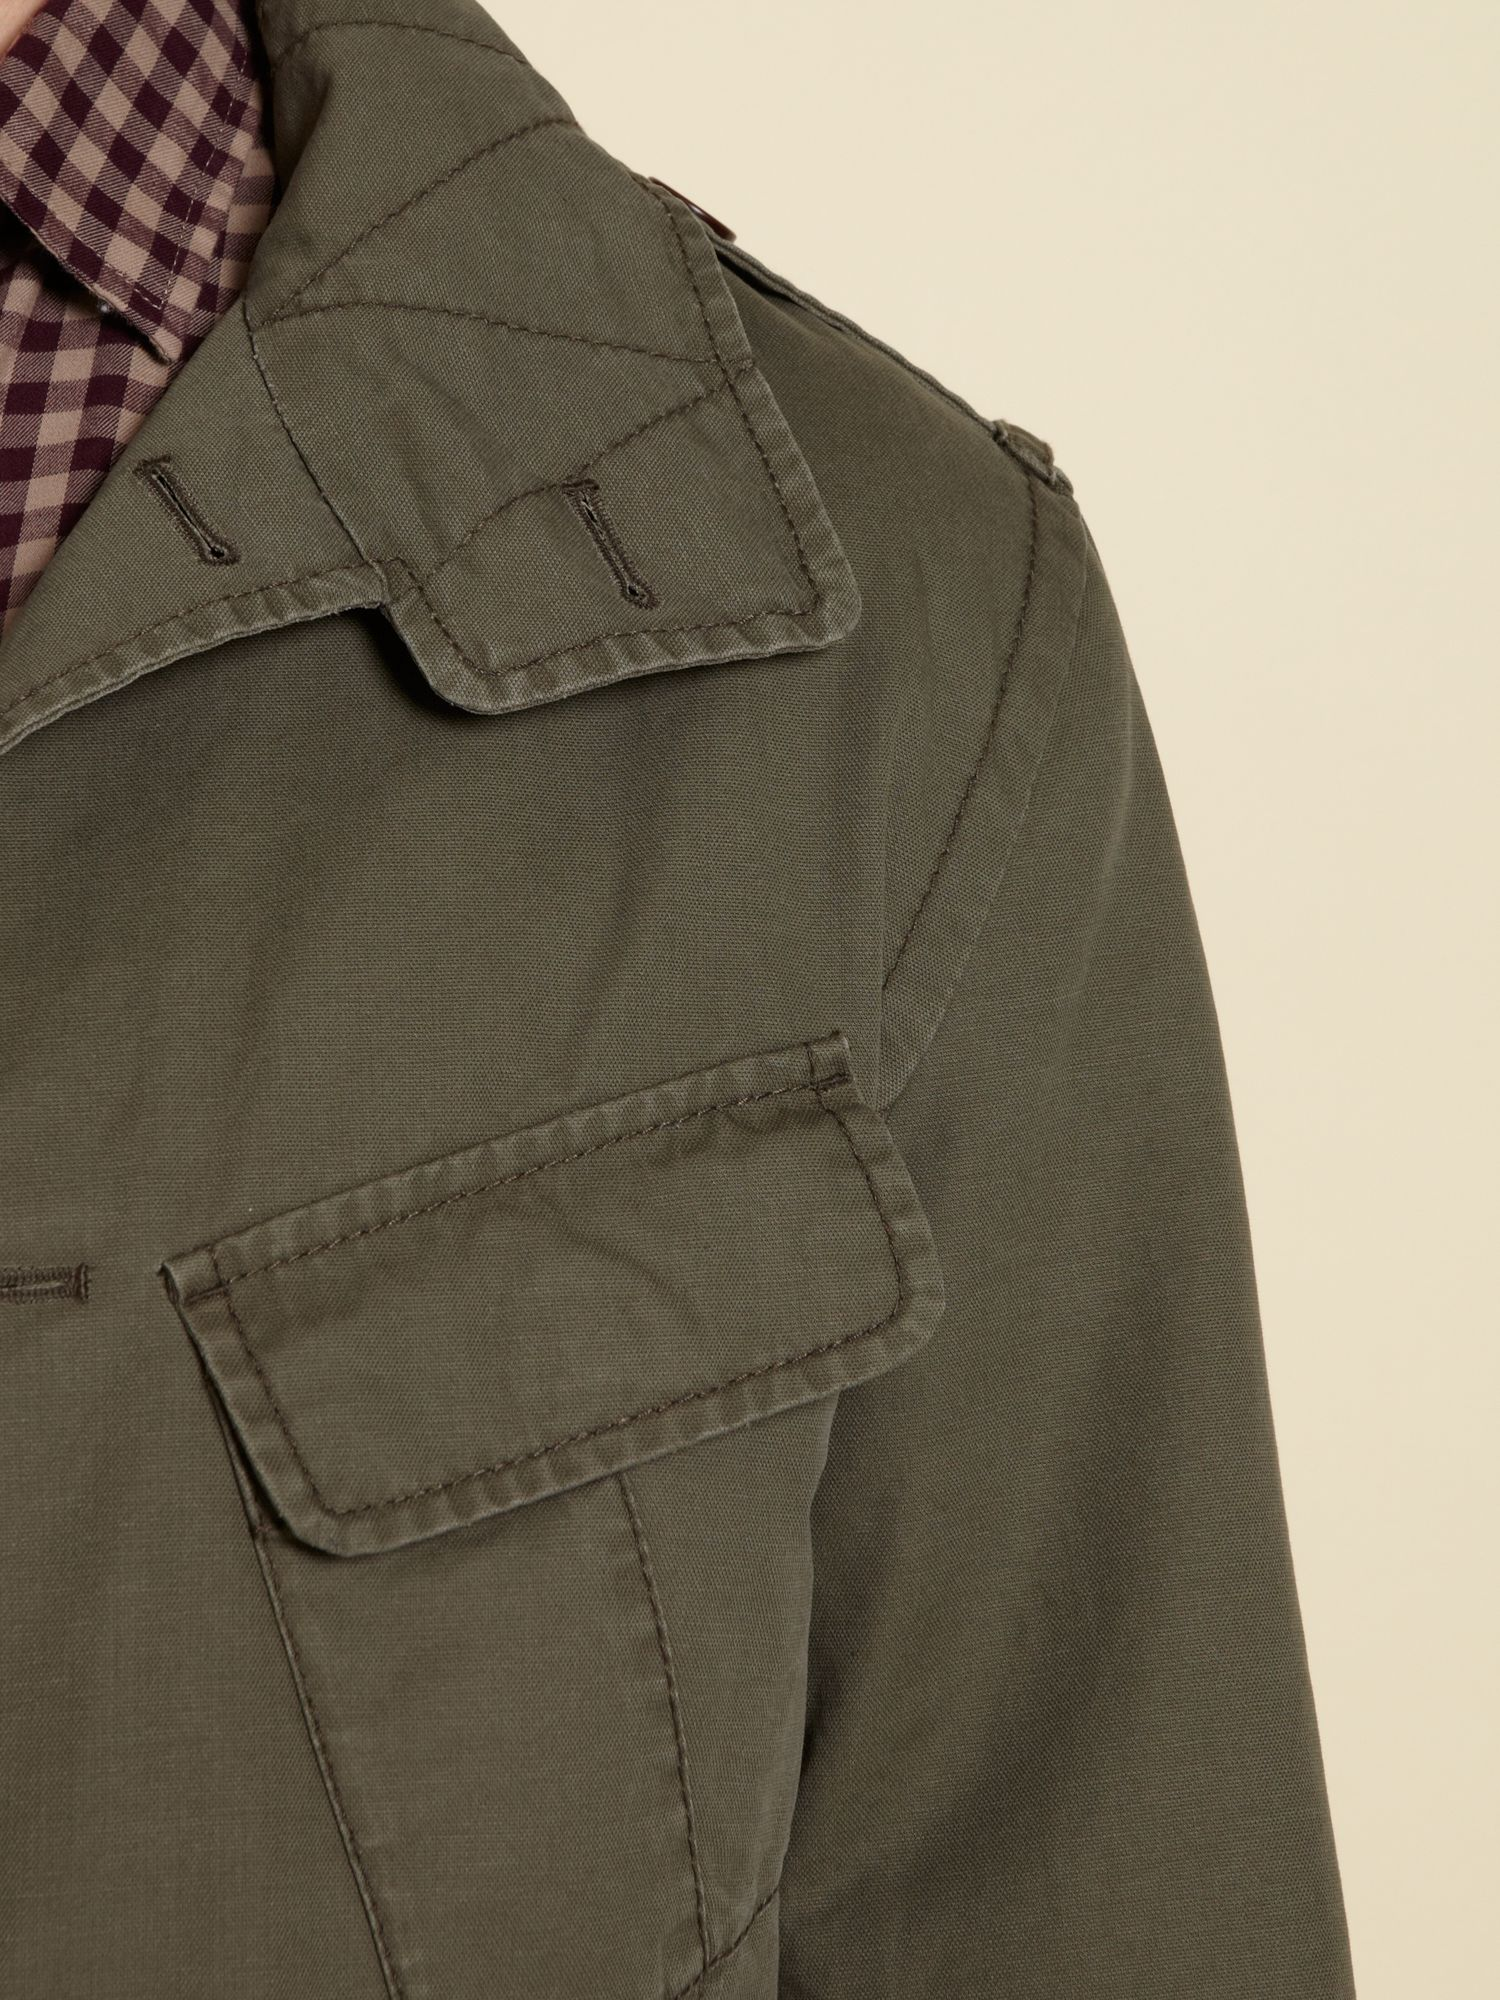 Howick Savannah Jacket in Army (Green) for Men